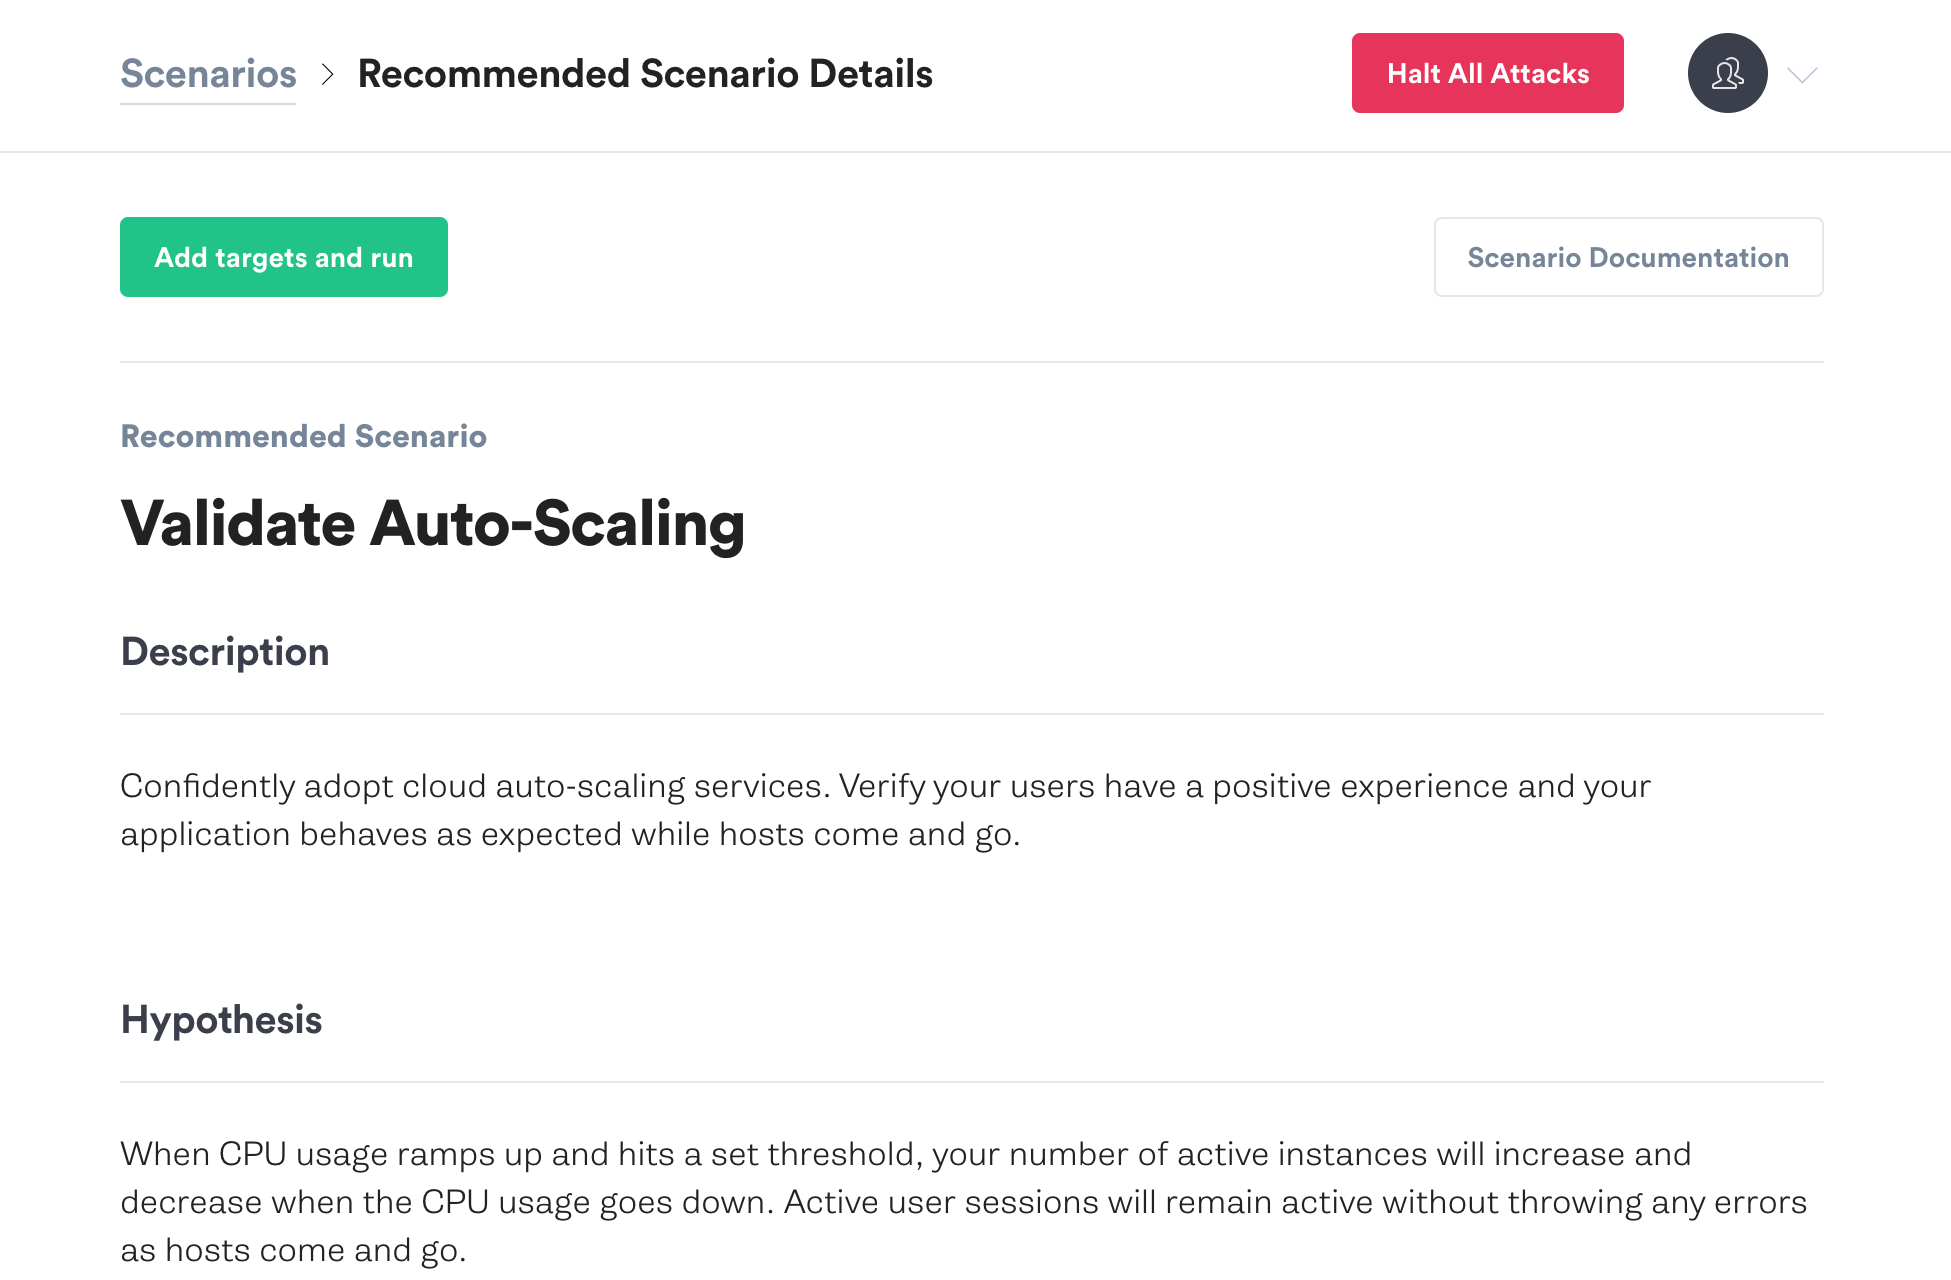 Validate Auto Scaling